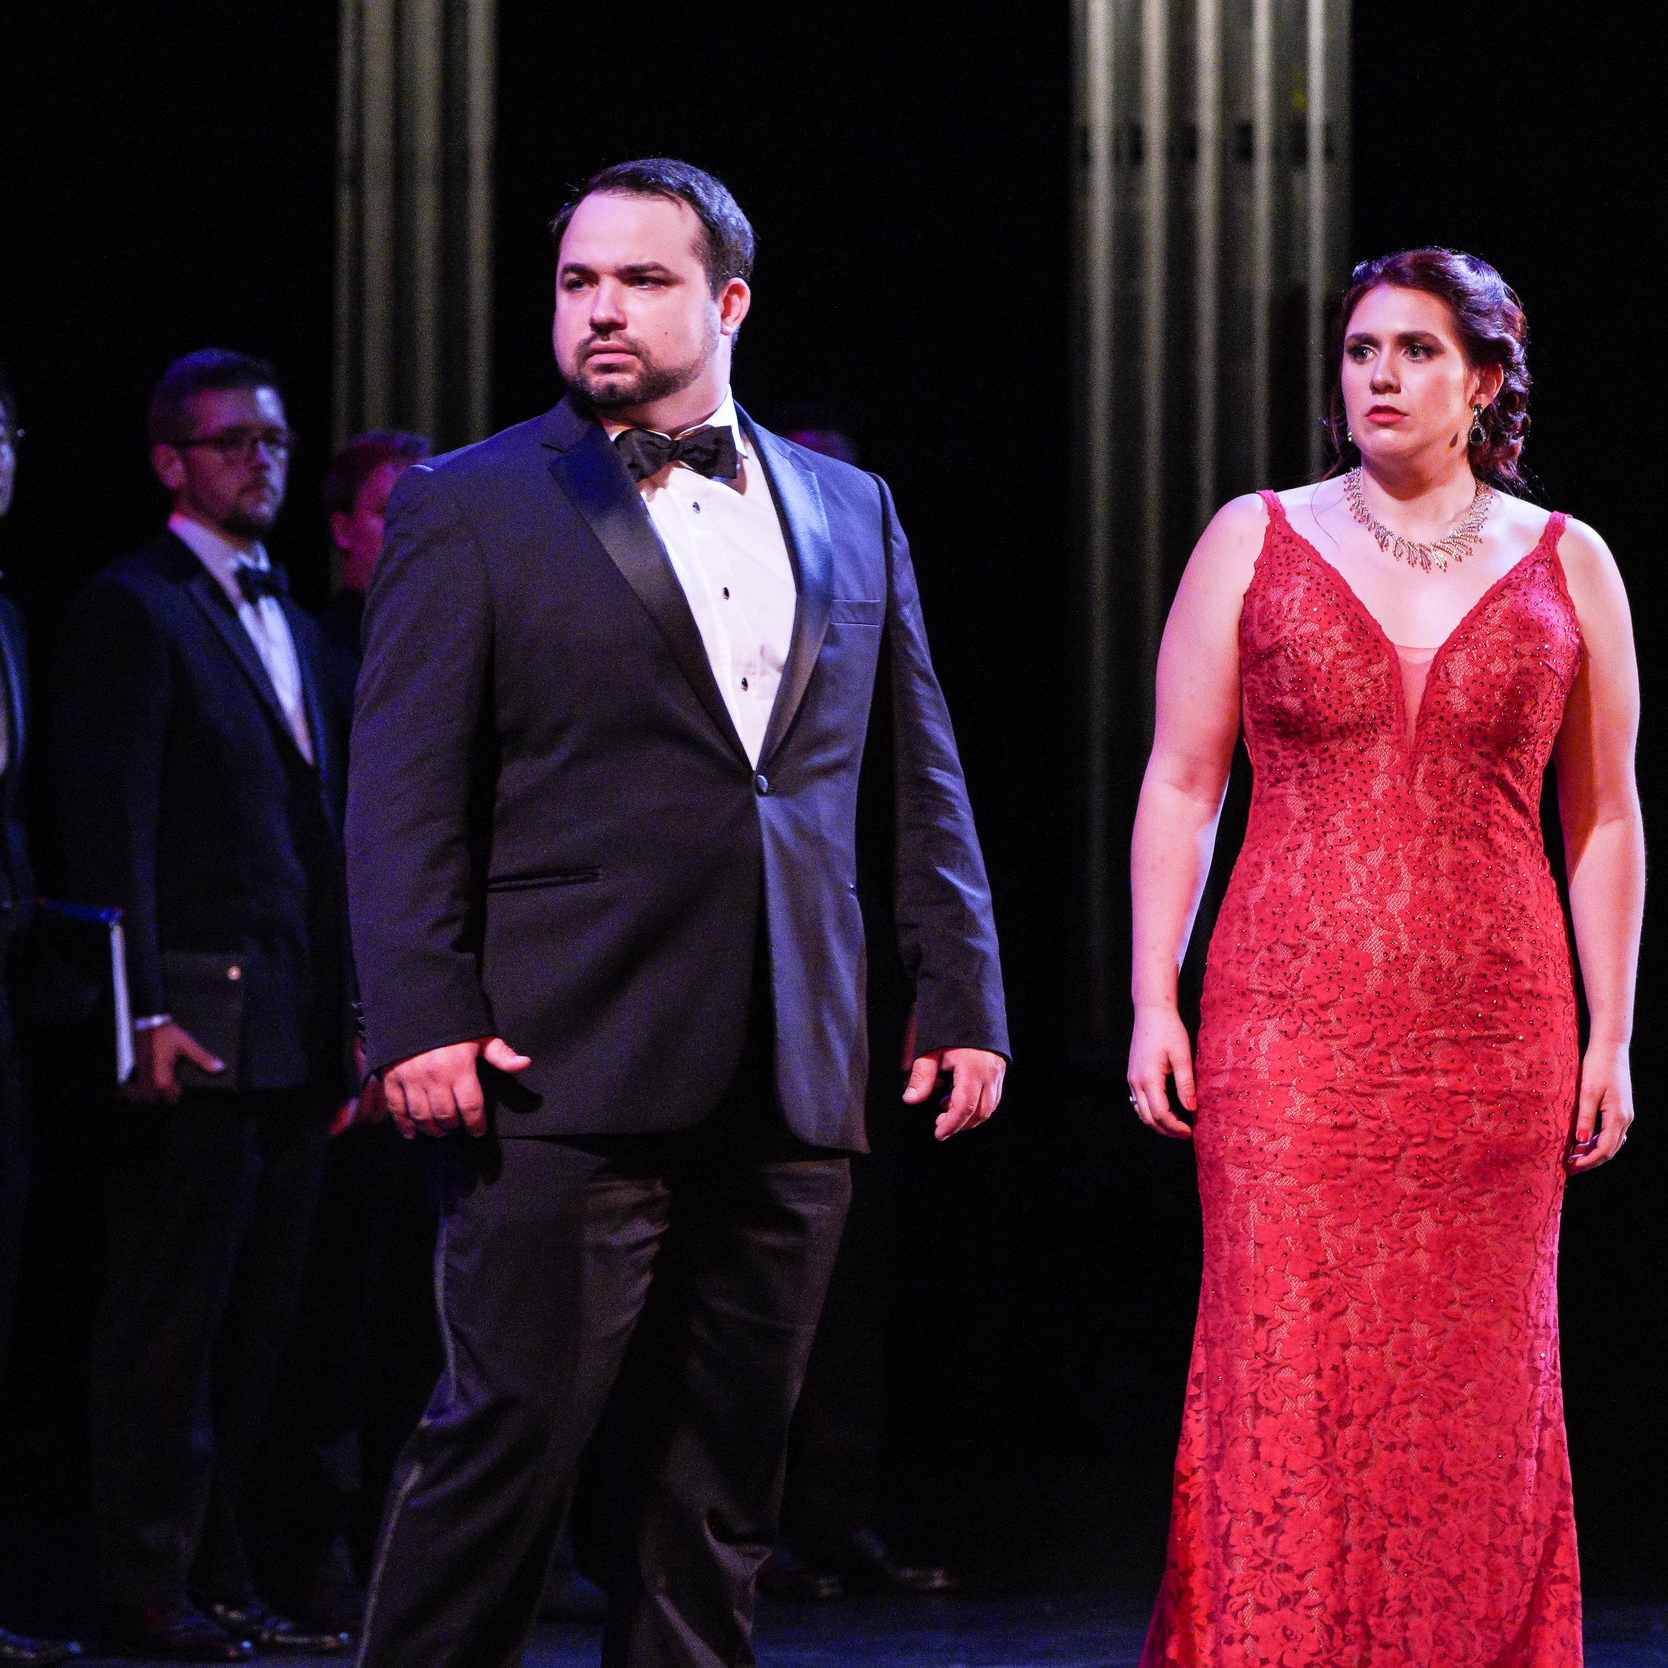 Berkshire Fine Arts: Teatro Nuovo's Bel Canto at SUNY Purchase - August 7, 2018